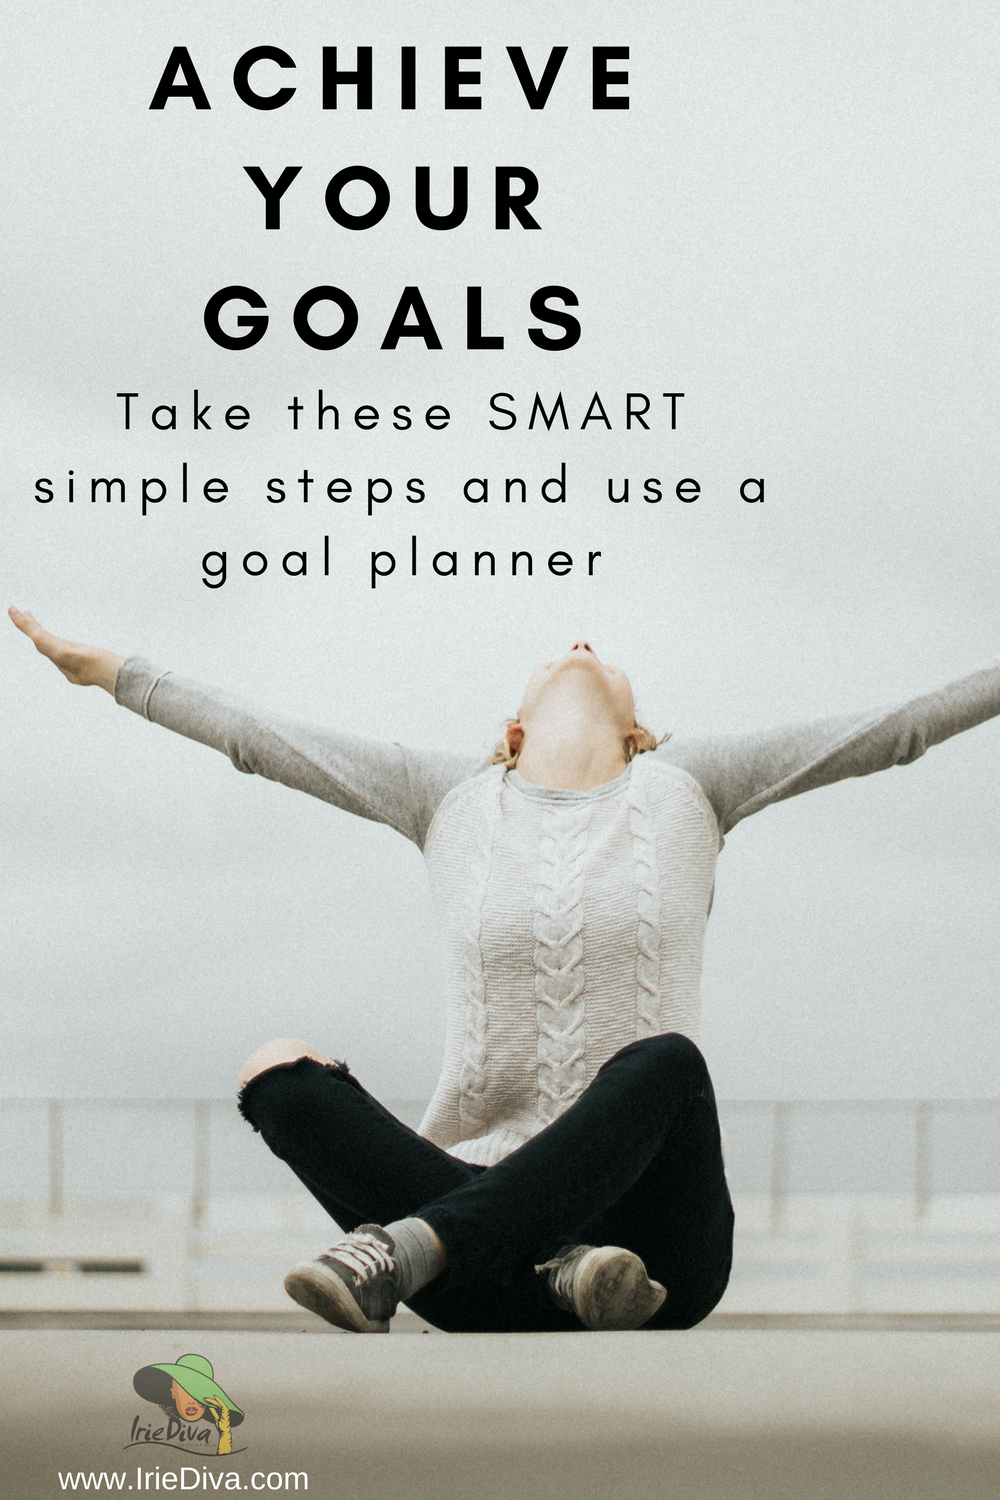 How to achieve your goals by making them SMART and breaking them down into monthly, weekly and daily tasks in a goal planner to achieve success.